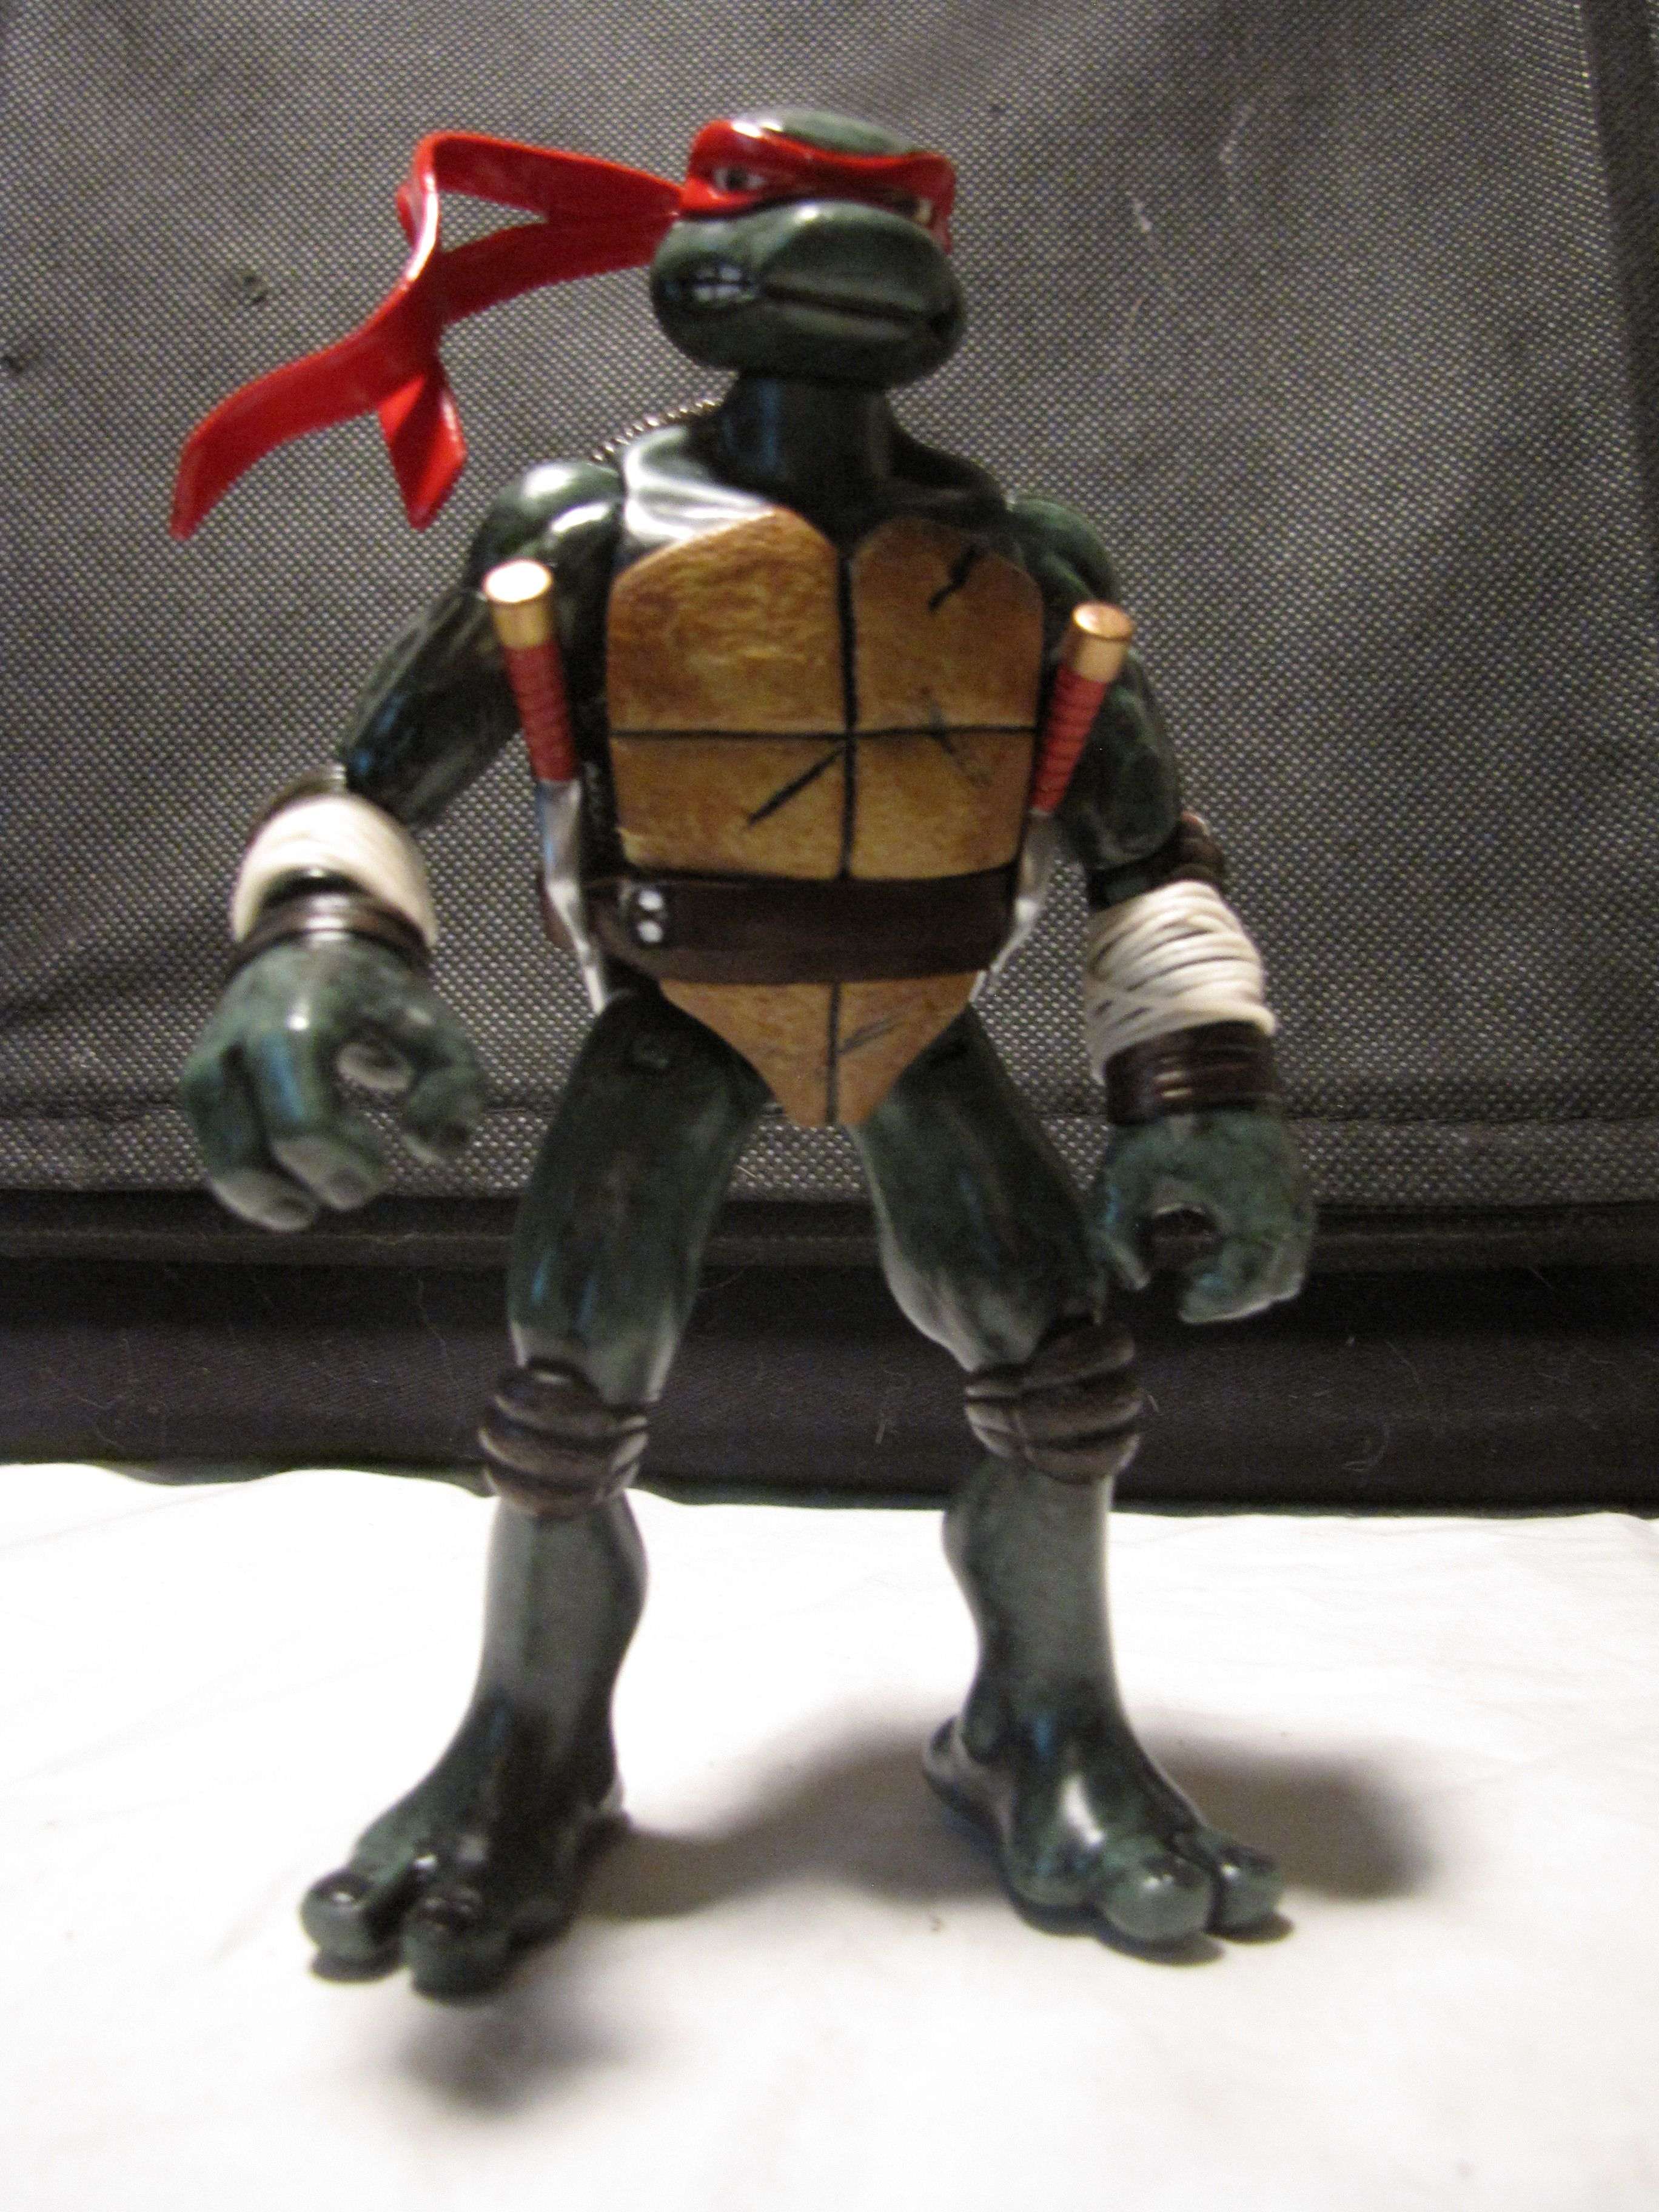 2007 Raph Action Biscui